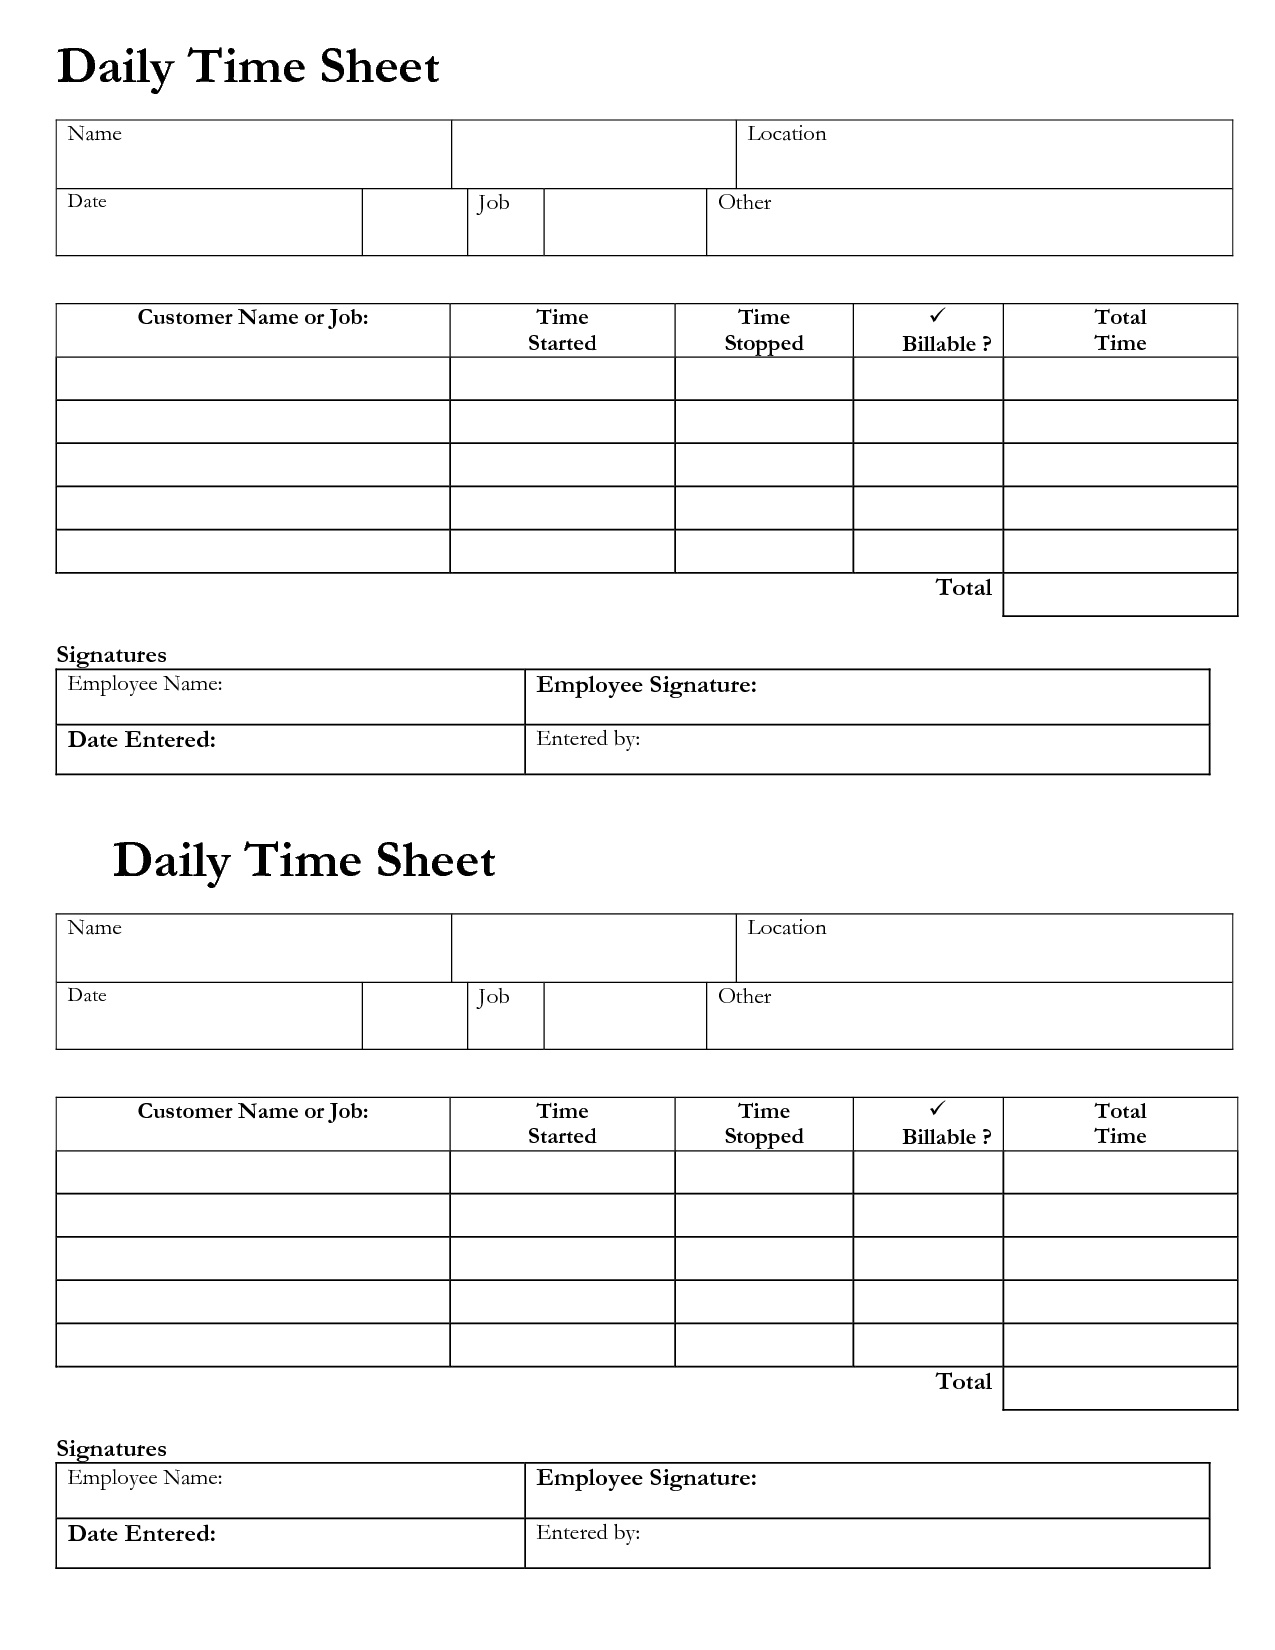 Billable Time Tracking Spreadsheet Intended For Daily Time Tracking Spreadsheet – Spreadsheet Collections